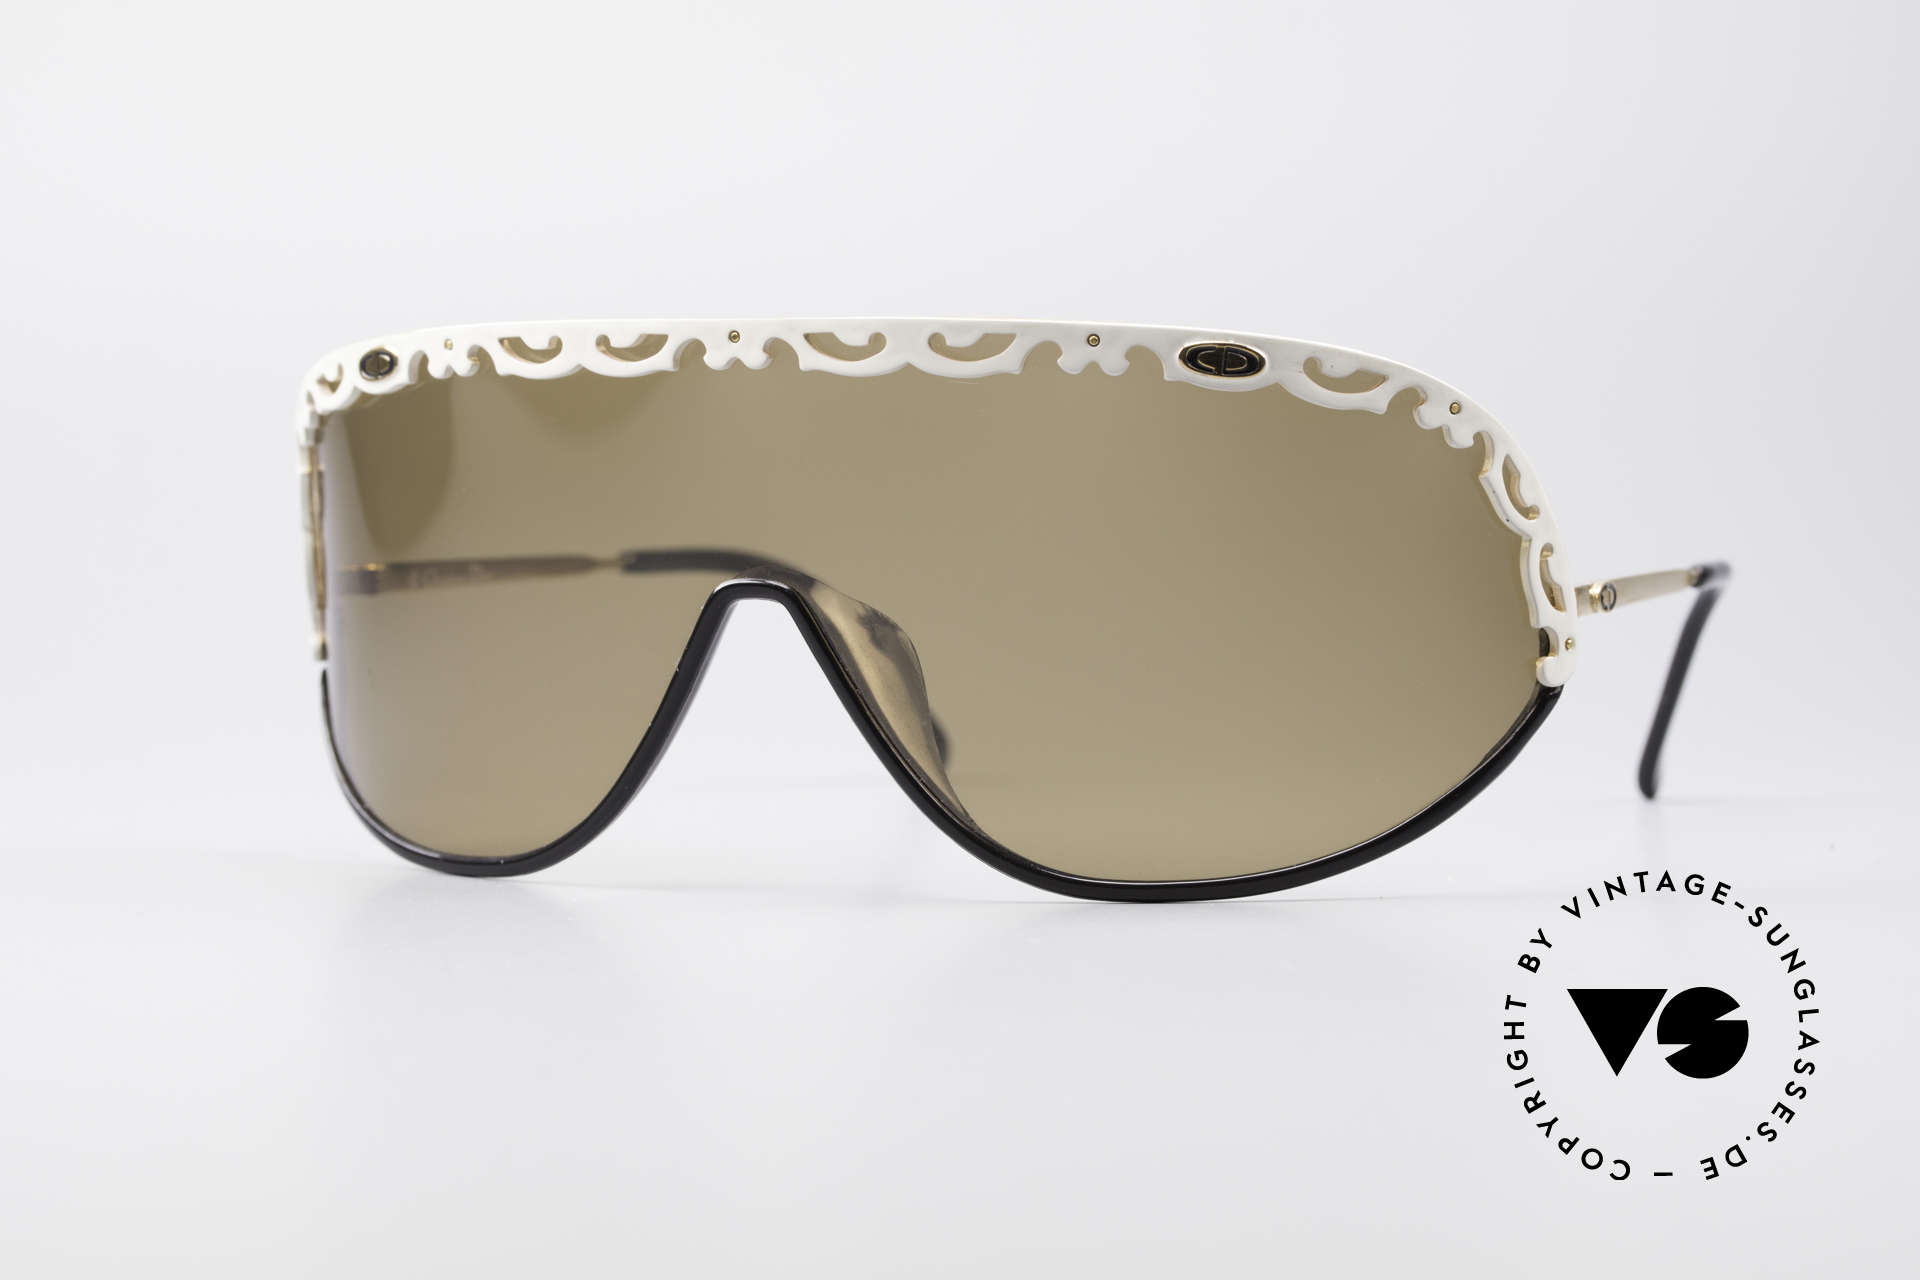 Christian Dior 2501 80's Designer Shades Ladies, glamorous ladies shades by Christian Dior of the 1980's, Made for Women